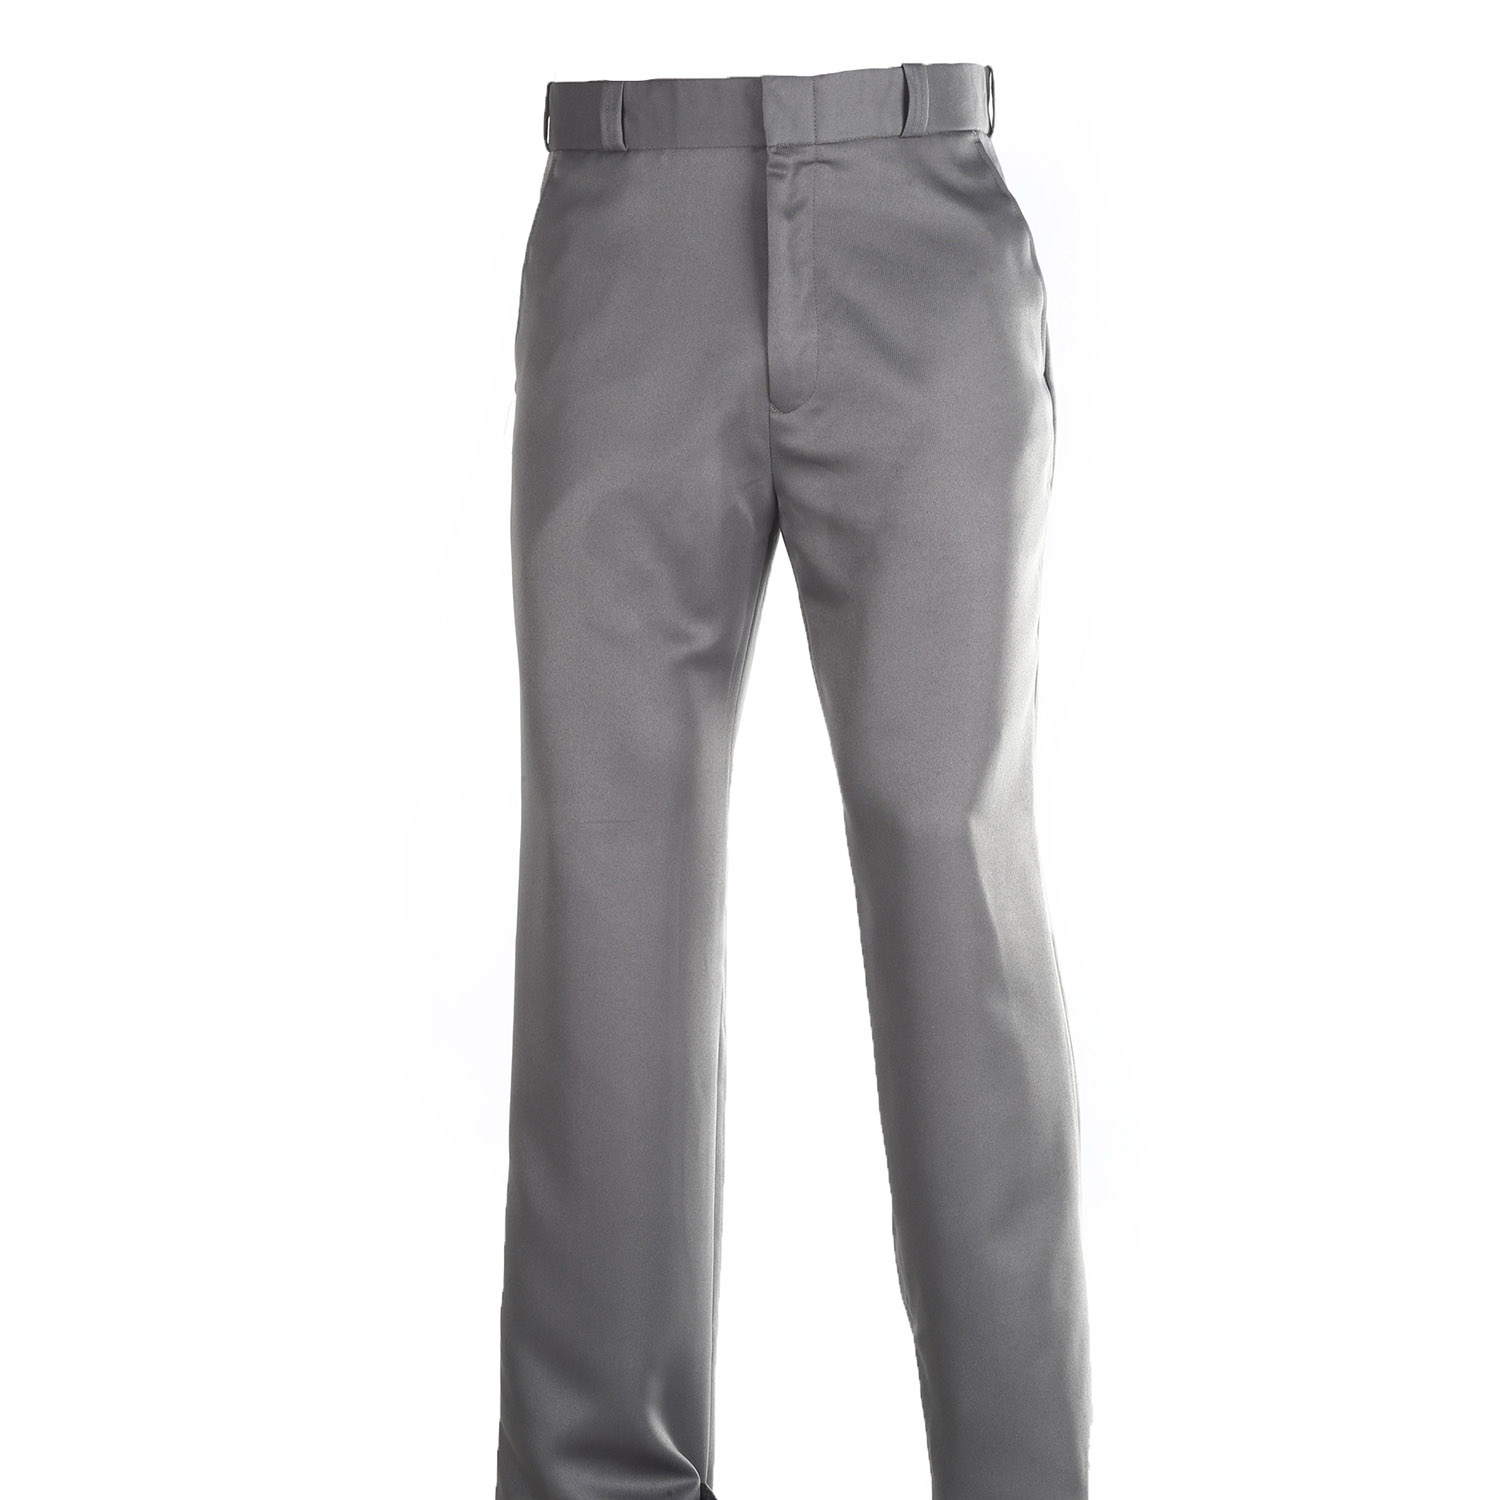 LawPro 100% Polyester Elastique Four Pocket Trousers